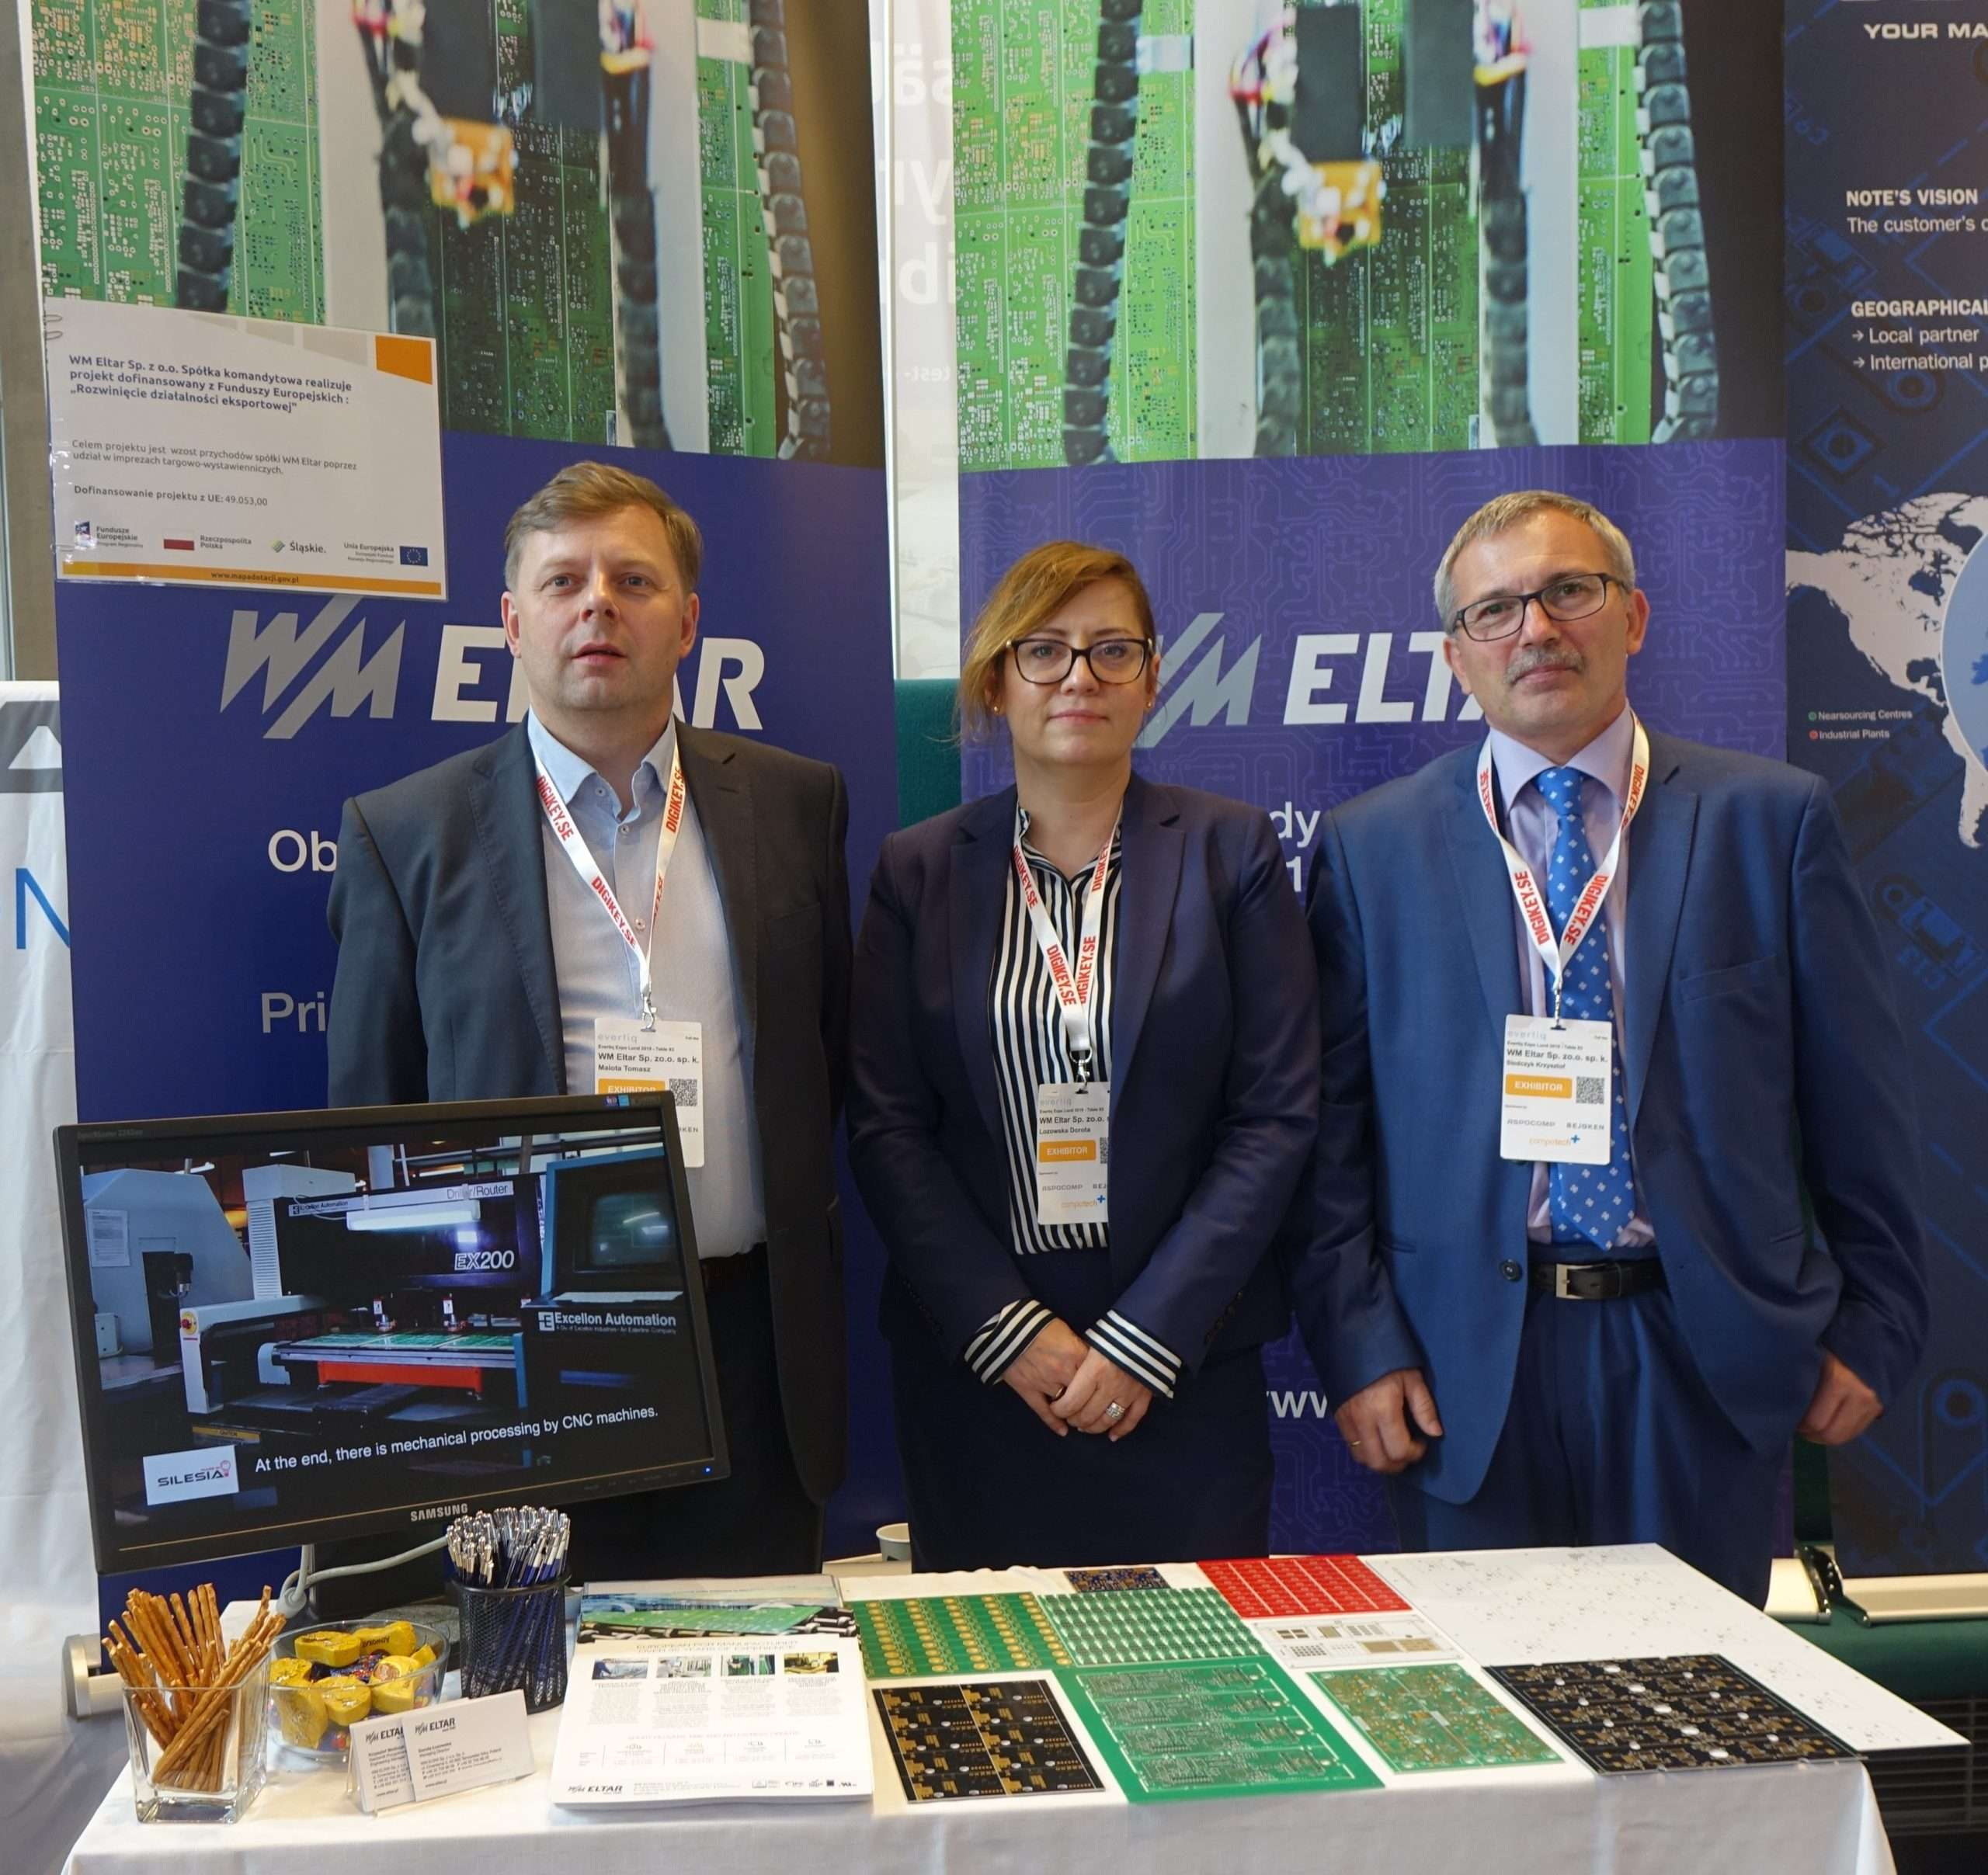 EVERTIQ EXPO, LUND / SWEDEN 1